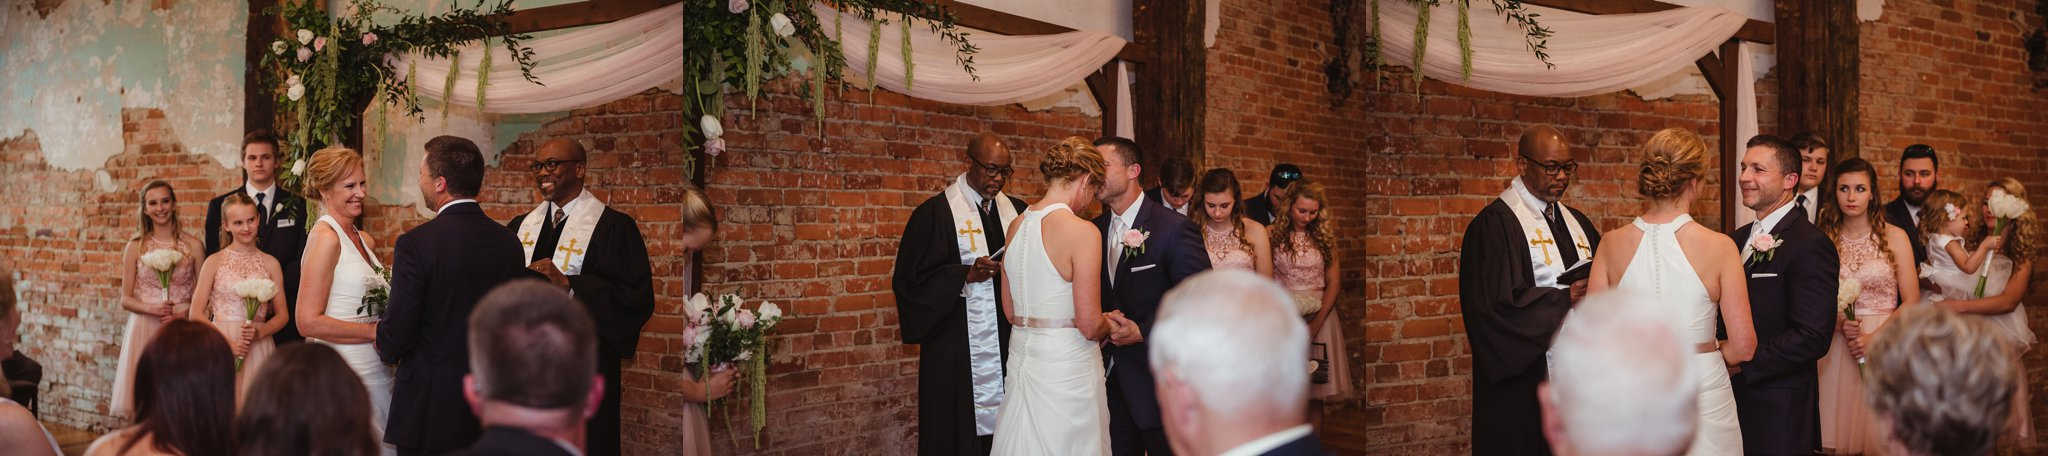 The bride and groom share vows and a sweet forehead kiss at their wedding ceremony in Youngsville, NC, images taken by Rose Trail Images.